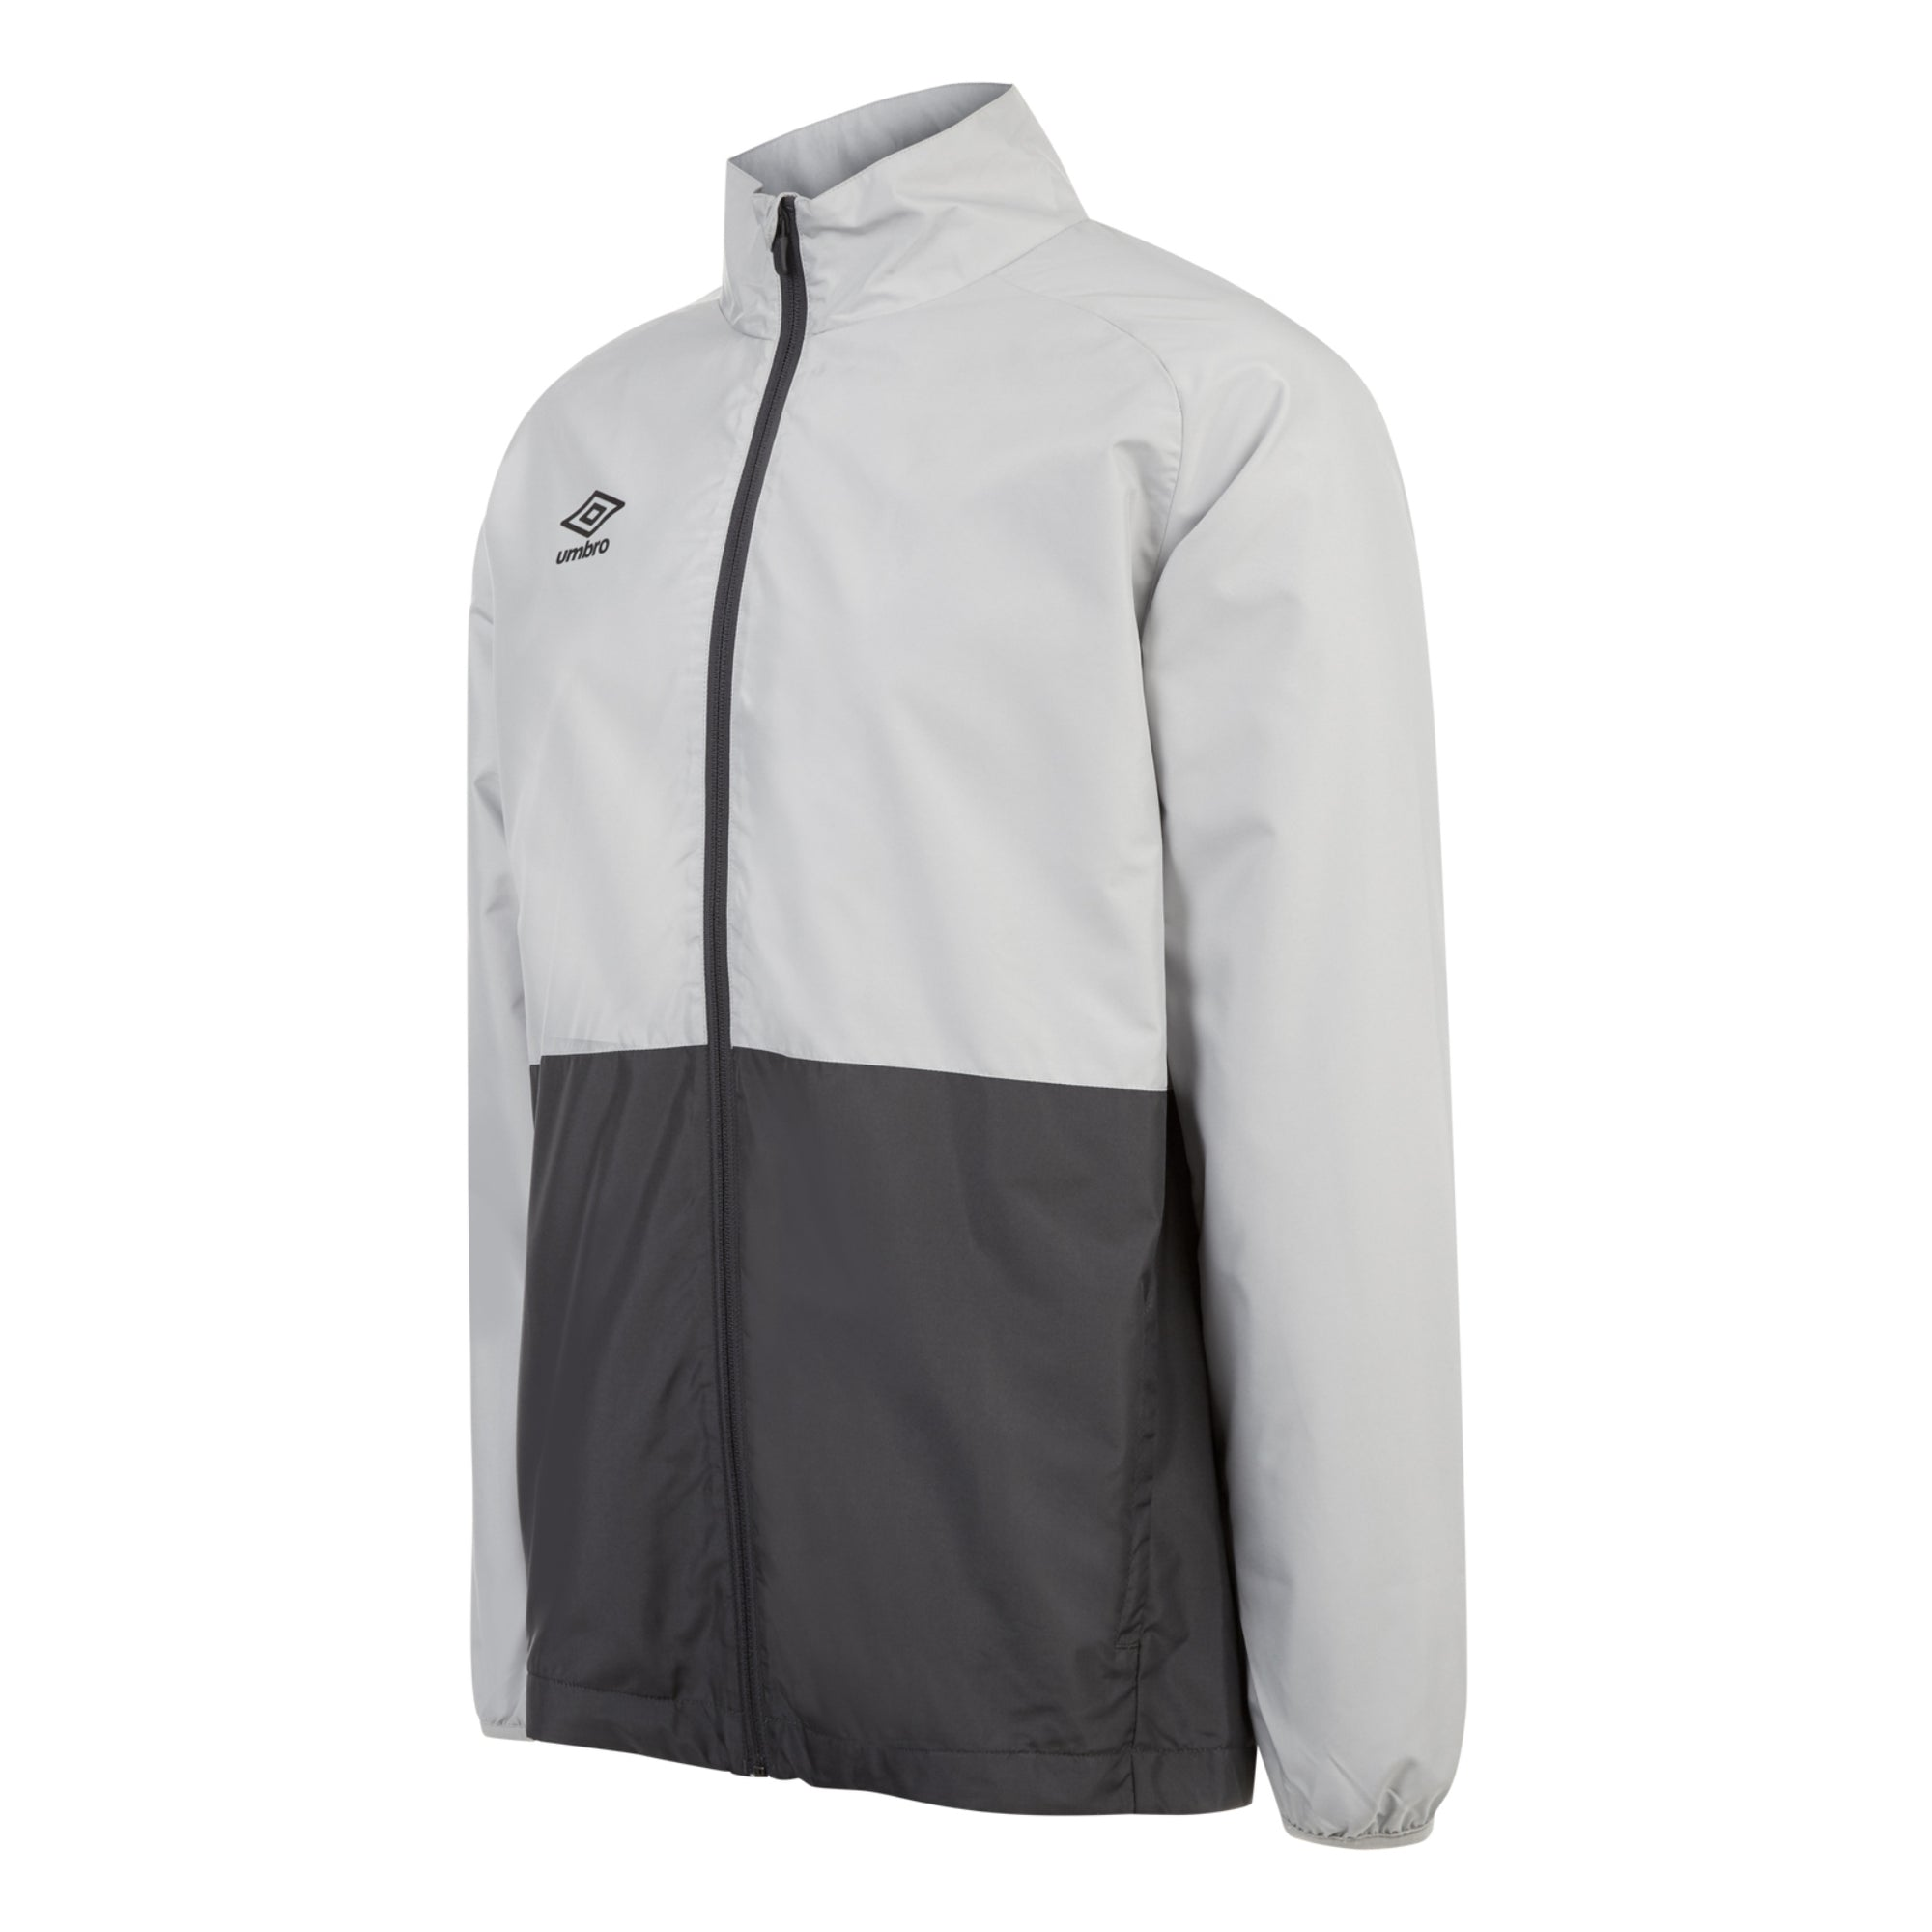 Umbro Training Shower Jacket - High Rise/Carbon